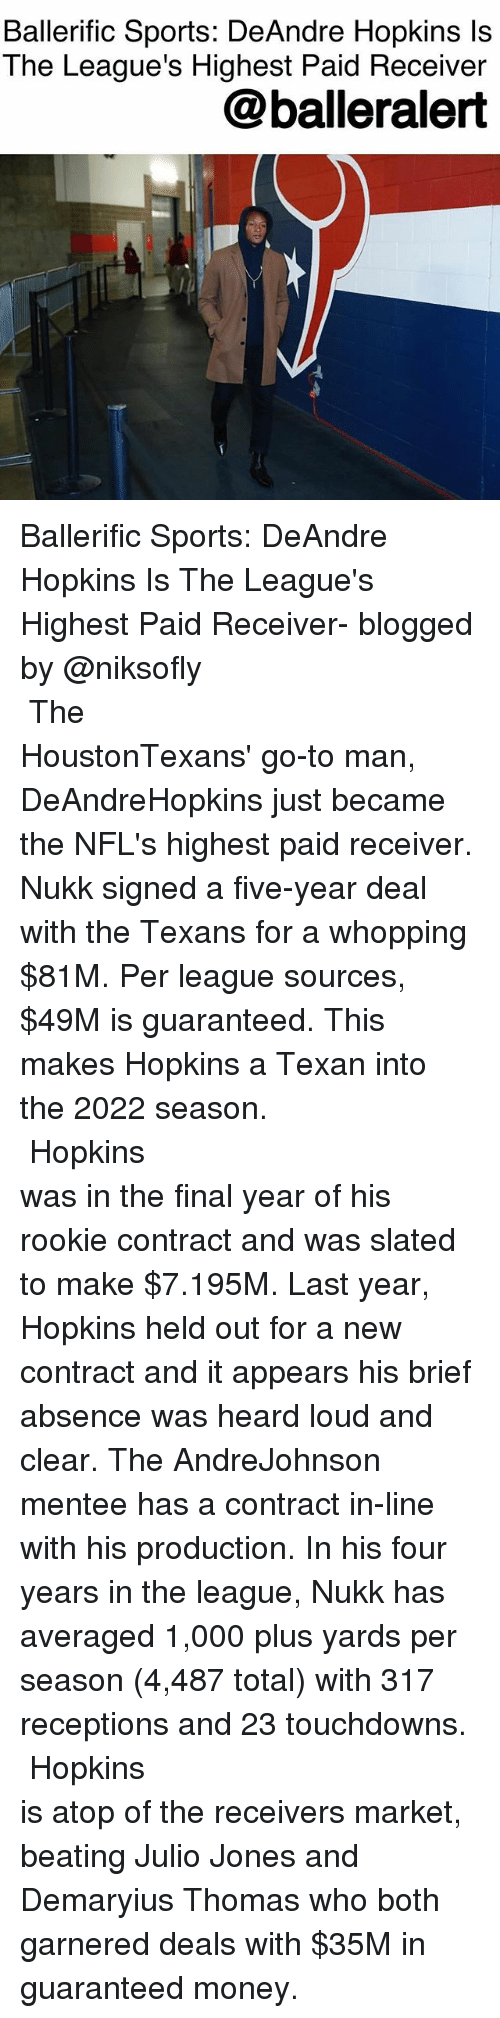 Louding: Ballerific Sports: DeAndre Hopkins ls  The League's Highest Paid Receiver  @balleralert Ballerific Sports: DeAndre Hopkins Is The League's Highest Paid Receiver- blogged by @niksofly ⠀⠀⠀⠀⠀⠀⠀⠀⠀⠀⠀⠀⠀⠀⠀⠀⠀⠀⠀⠀⠀⠀⠀⠀⠀⠀⠀⠀⠀⠀⠀⠀⠀⠀⠀⠀ The HoustonTexans' go-to man, DeAndreHopkins just became the NFL's highest paid receiver. Nukk signed a five-year deal with the Texans for a whopping $81M. Per league sources, $49M is guaranteed. This makes Hopkins a Texan into the 2022 season. ⠀⠀⠀⠀⠀⠀⠀⠀⠀⠀⠀⠀⠀⠀⠀⠀⠀⠀⠀⠀⠀⠀⠀⠀⠀⠀⠀⠀⠀⠀⠀⠀⠀⠀⠀⠀ Hopkins was in the final year of his rookie contract and was slated to make $7.195M. Last year, Hopkins held out for a new contract and it appears his brief absence was heard loud and clear. The AndreJohnson mentee has a contract in-line with his production. In his four years in the league, Nukk has averaged 1,000 plus yards per season (4,487 total) with 317 receptions and 23 touchdowns. ⠀⠀⠀⠀⠀⠀⠀⠀⠀⠀⠀⠀⠀⠀⠀⠀⠀⠀⠀⠀⠀⠀⠀⠀⠀⠀⠀⠀⠀⠀⠀⠀⠀⠀⠀⠀ Hopkins is atop of the receivers market, beating Julio Jones and Demaryius Thomas who both garnered deals with $35M in guaranteed money.